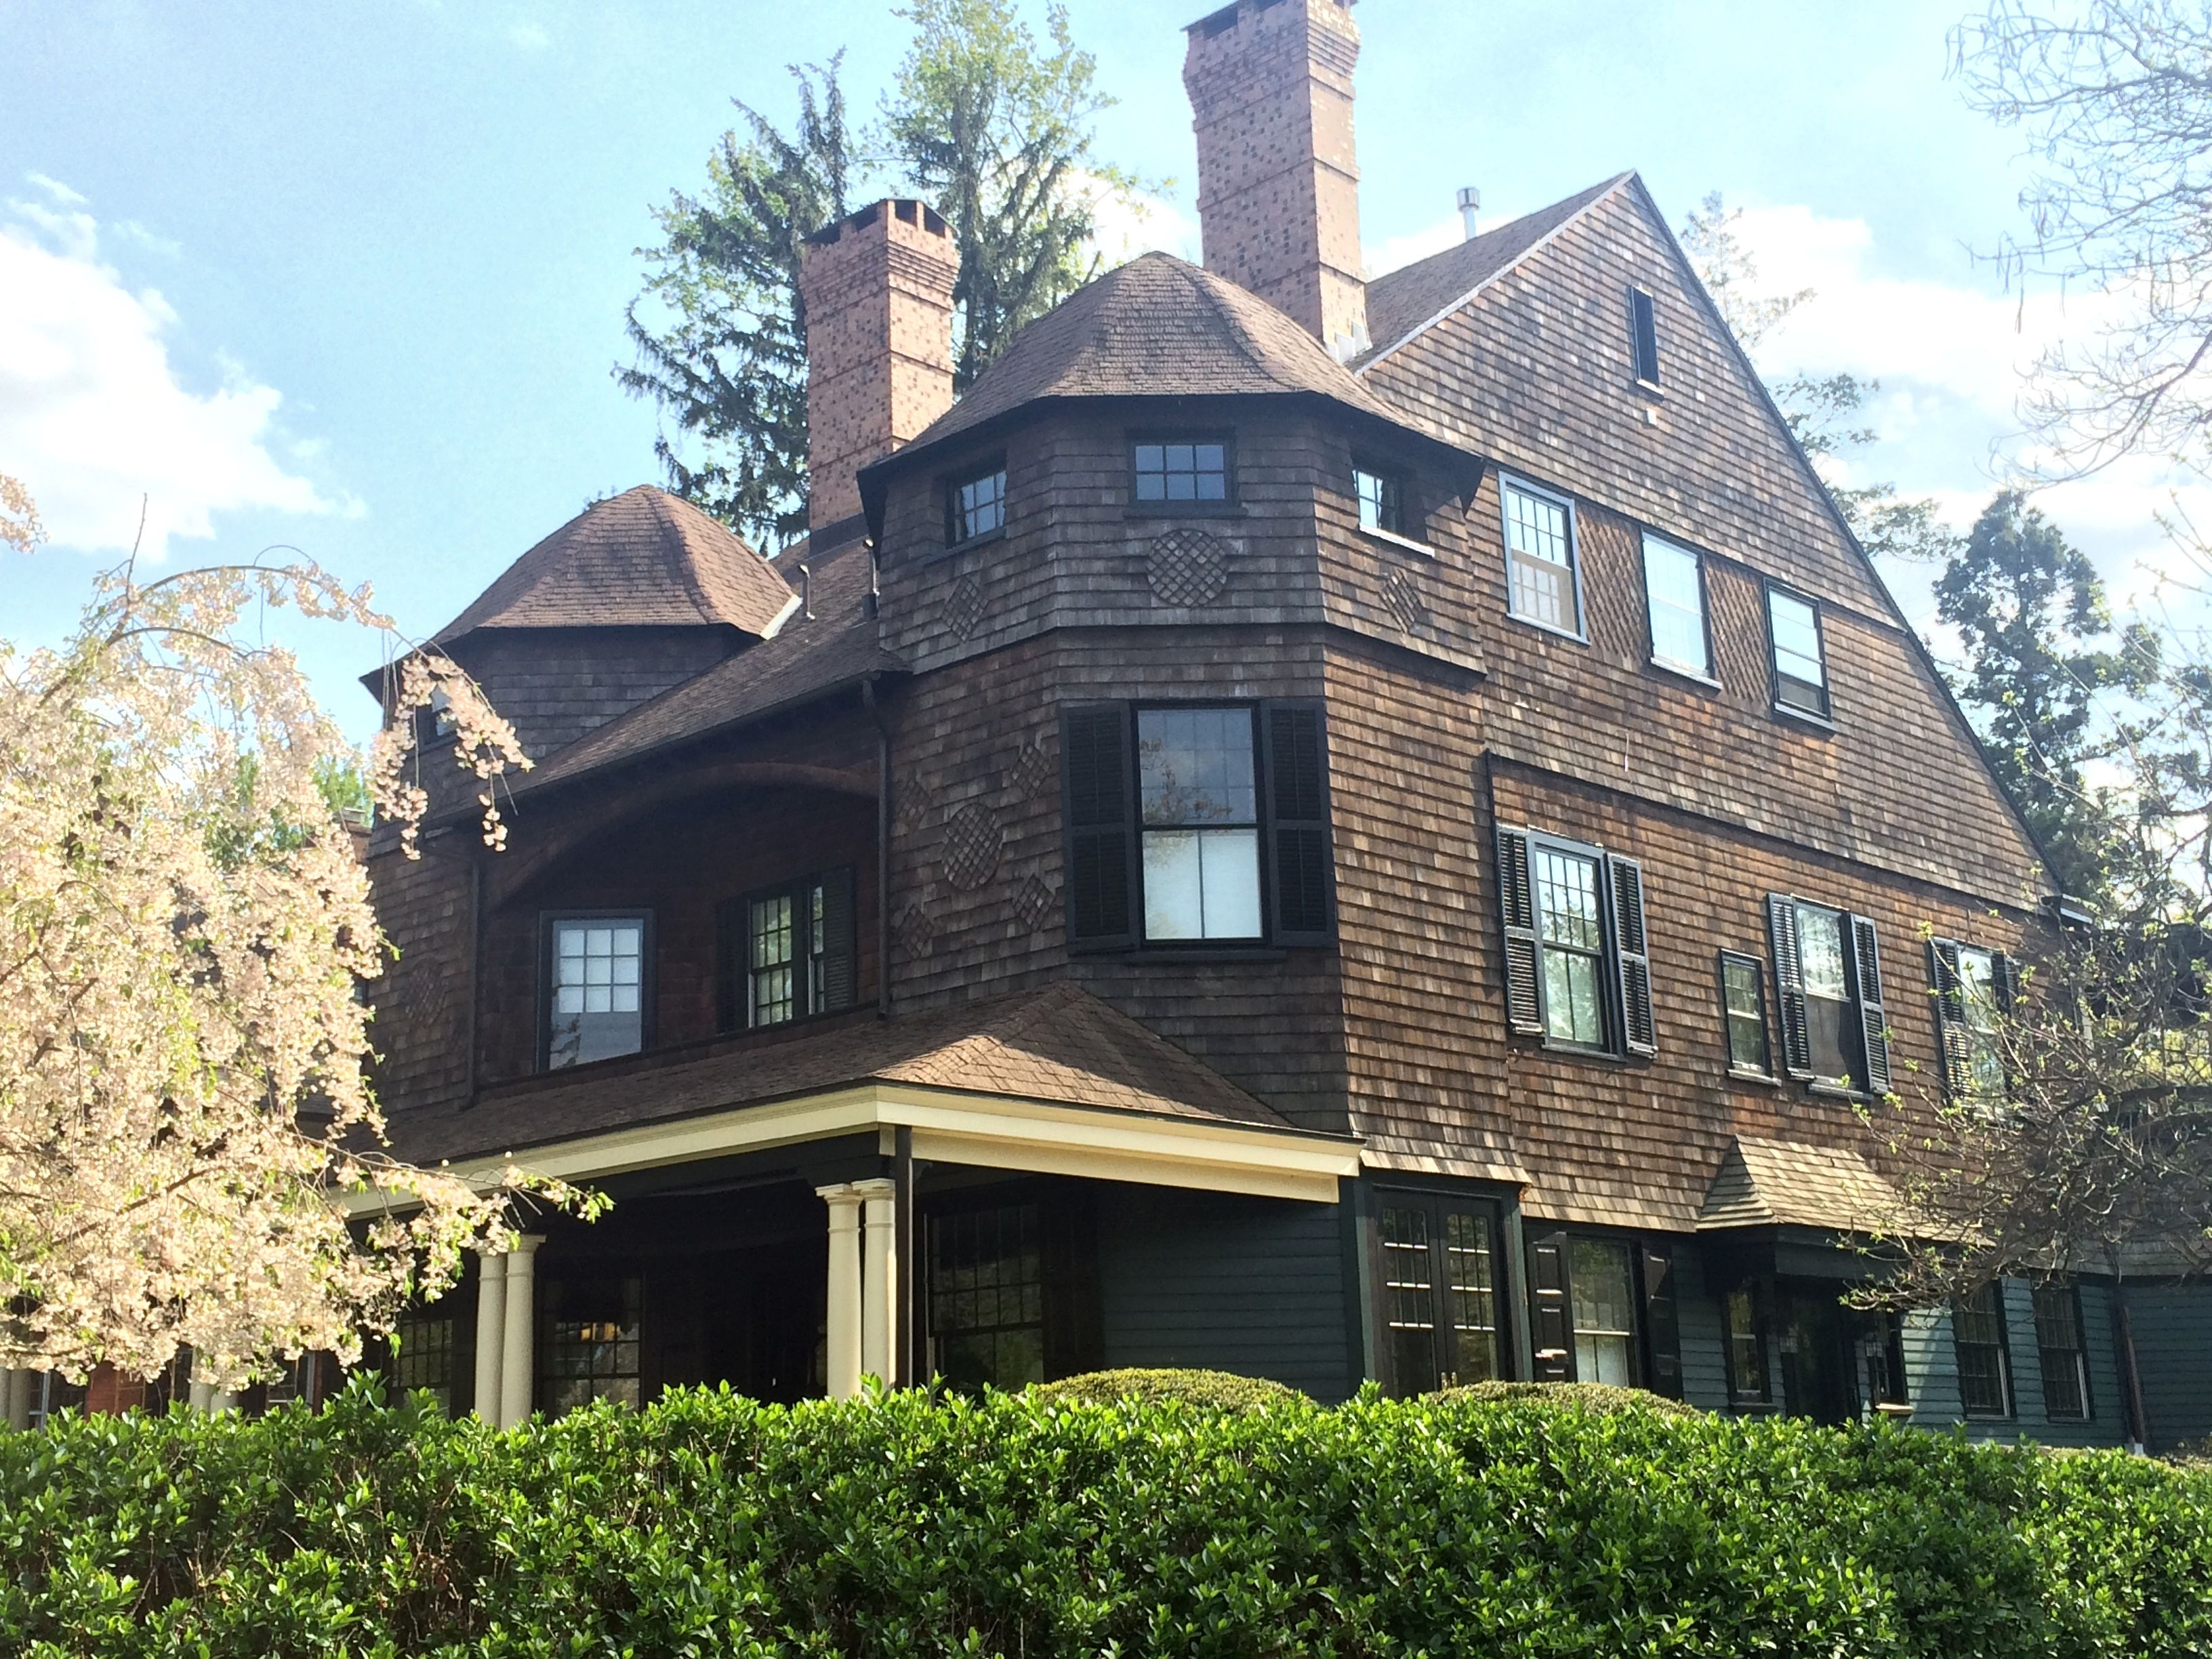 HouseQueen Anne style architecture in the United States   Wikipedia  . Shingle Style Architecture History. Home Design Ideas